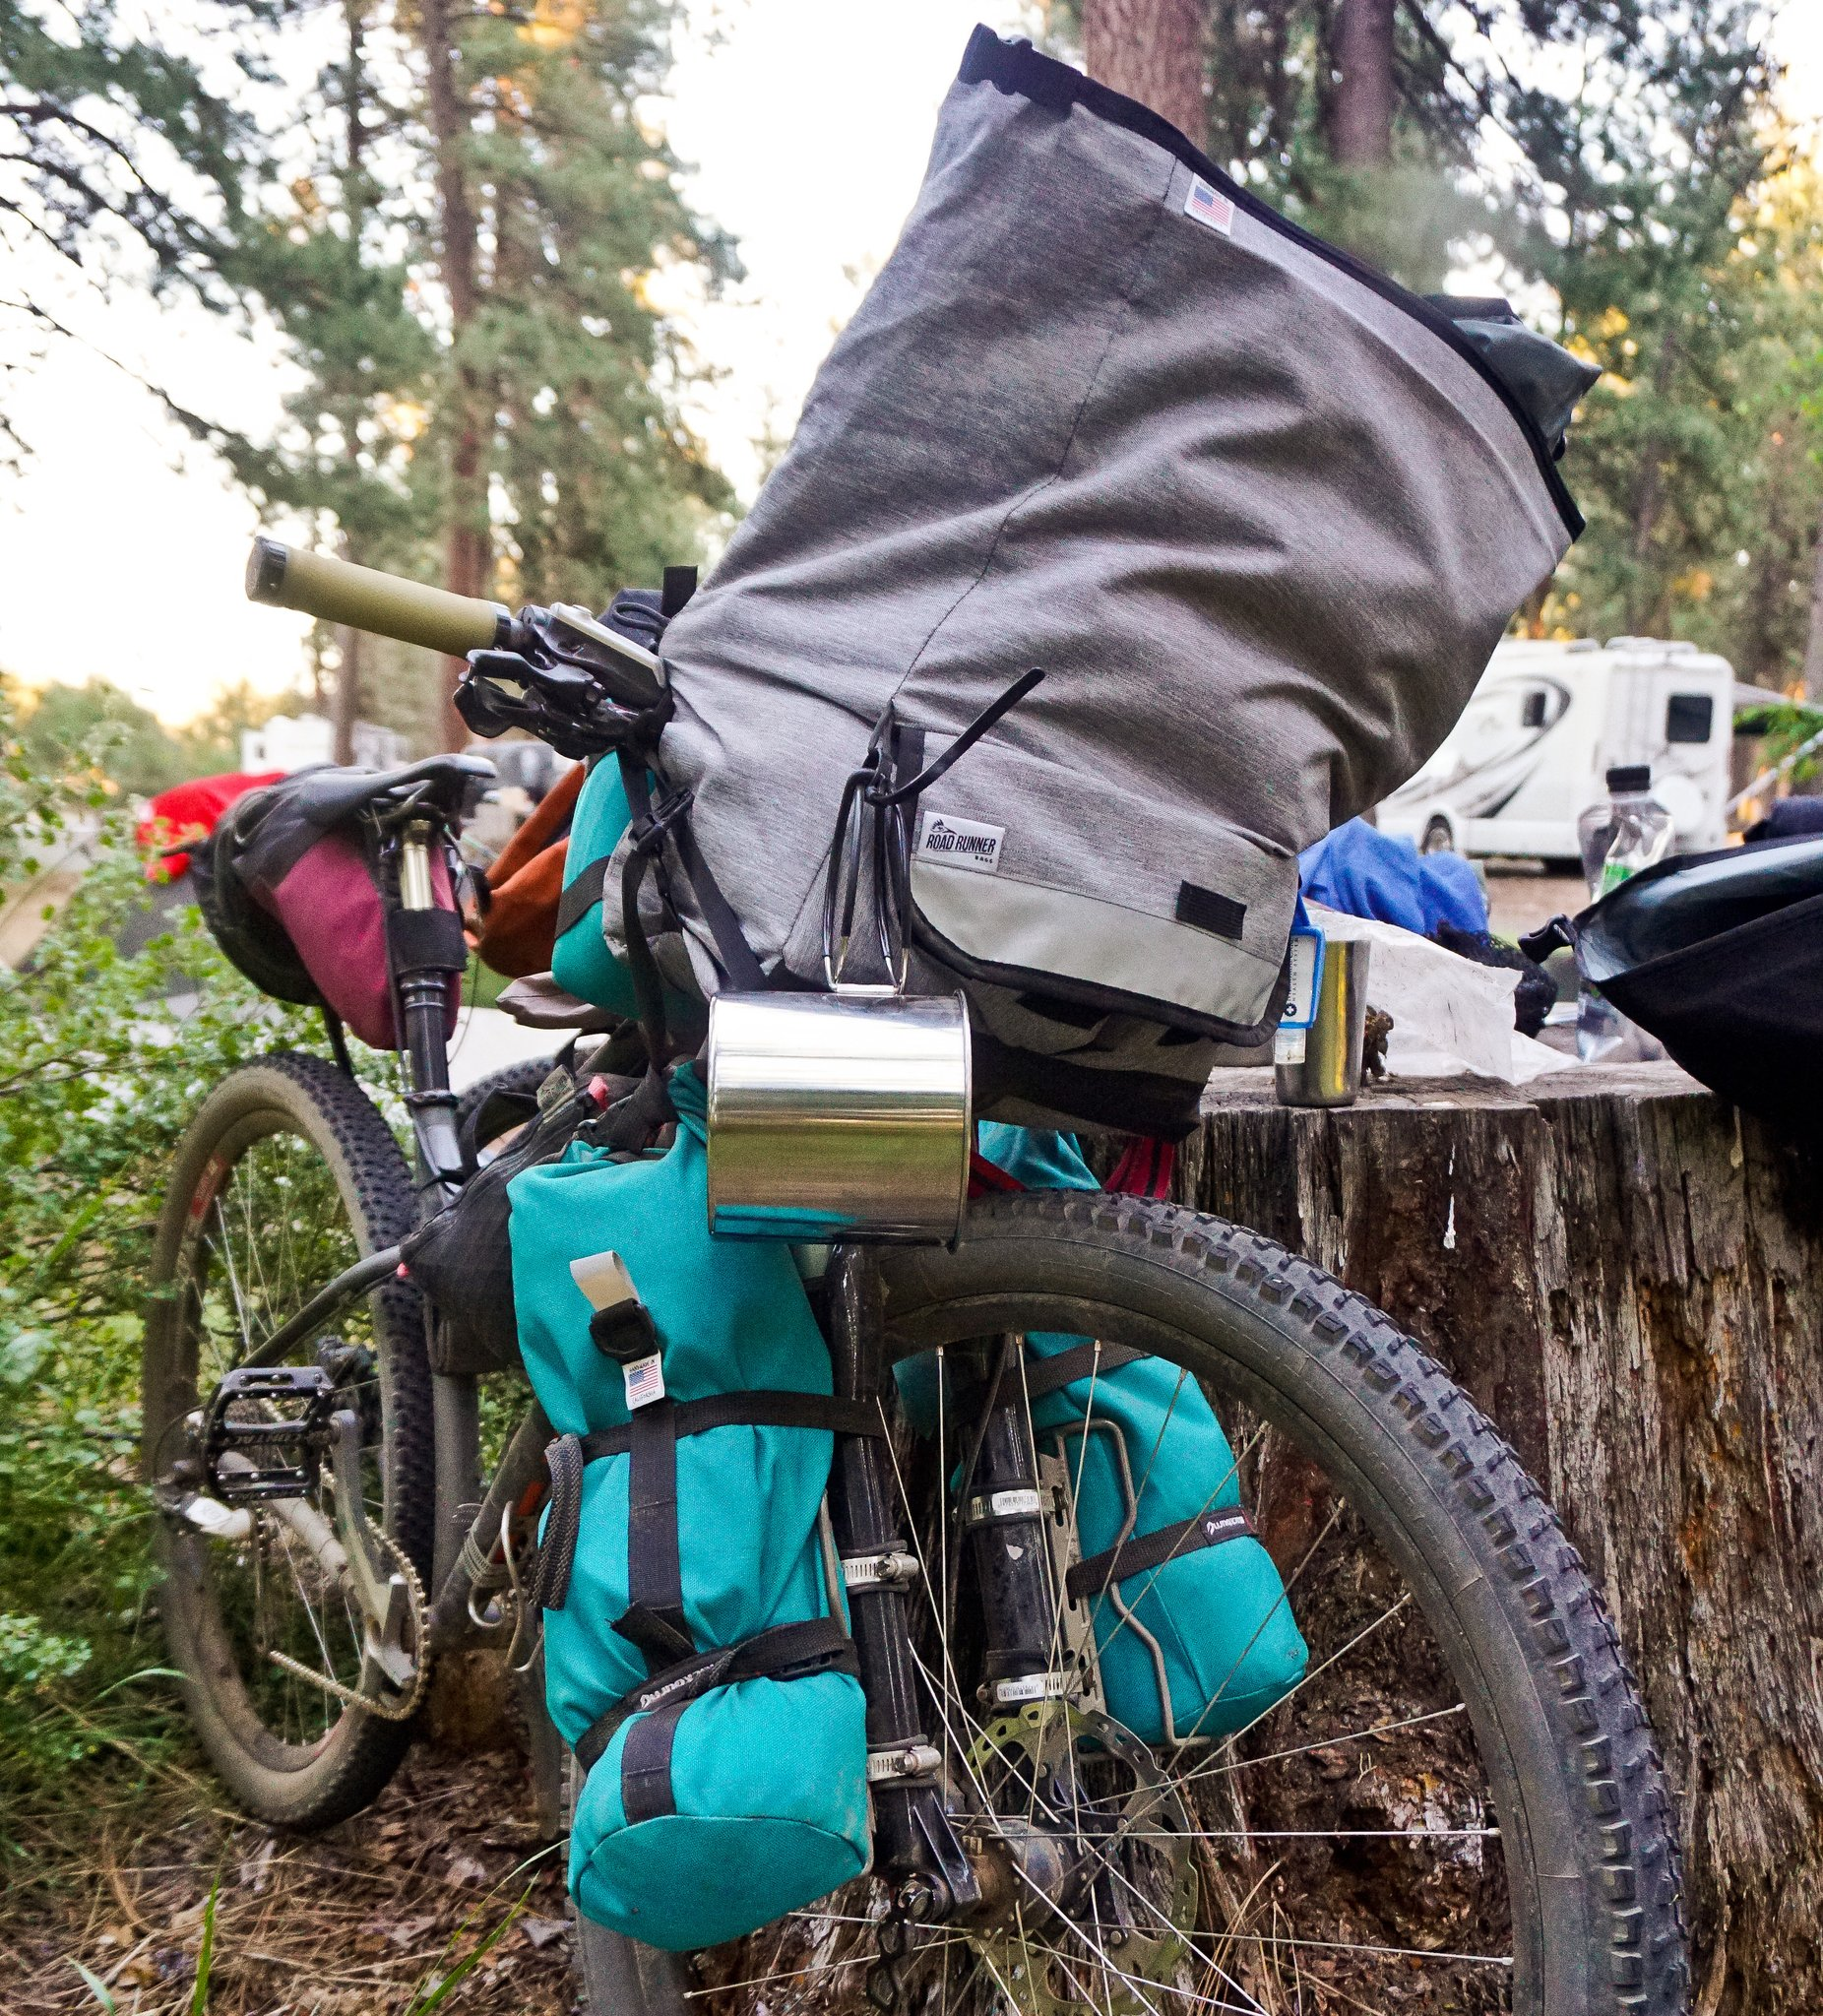 Roadrunner_Bikepacking_Bags_1.jpg